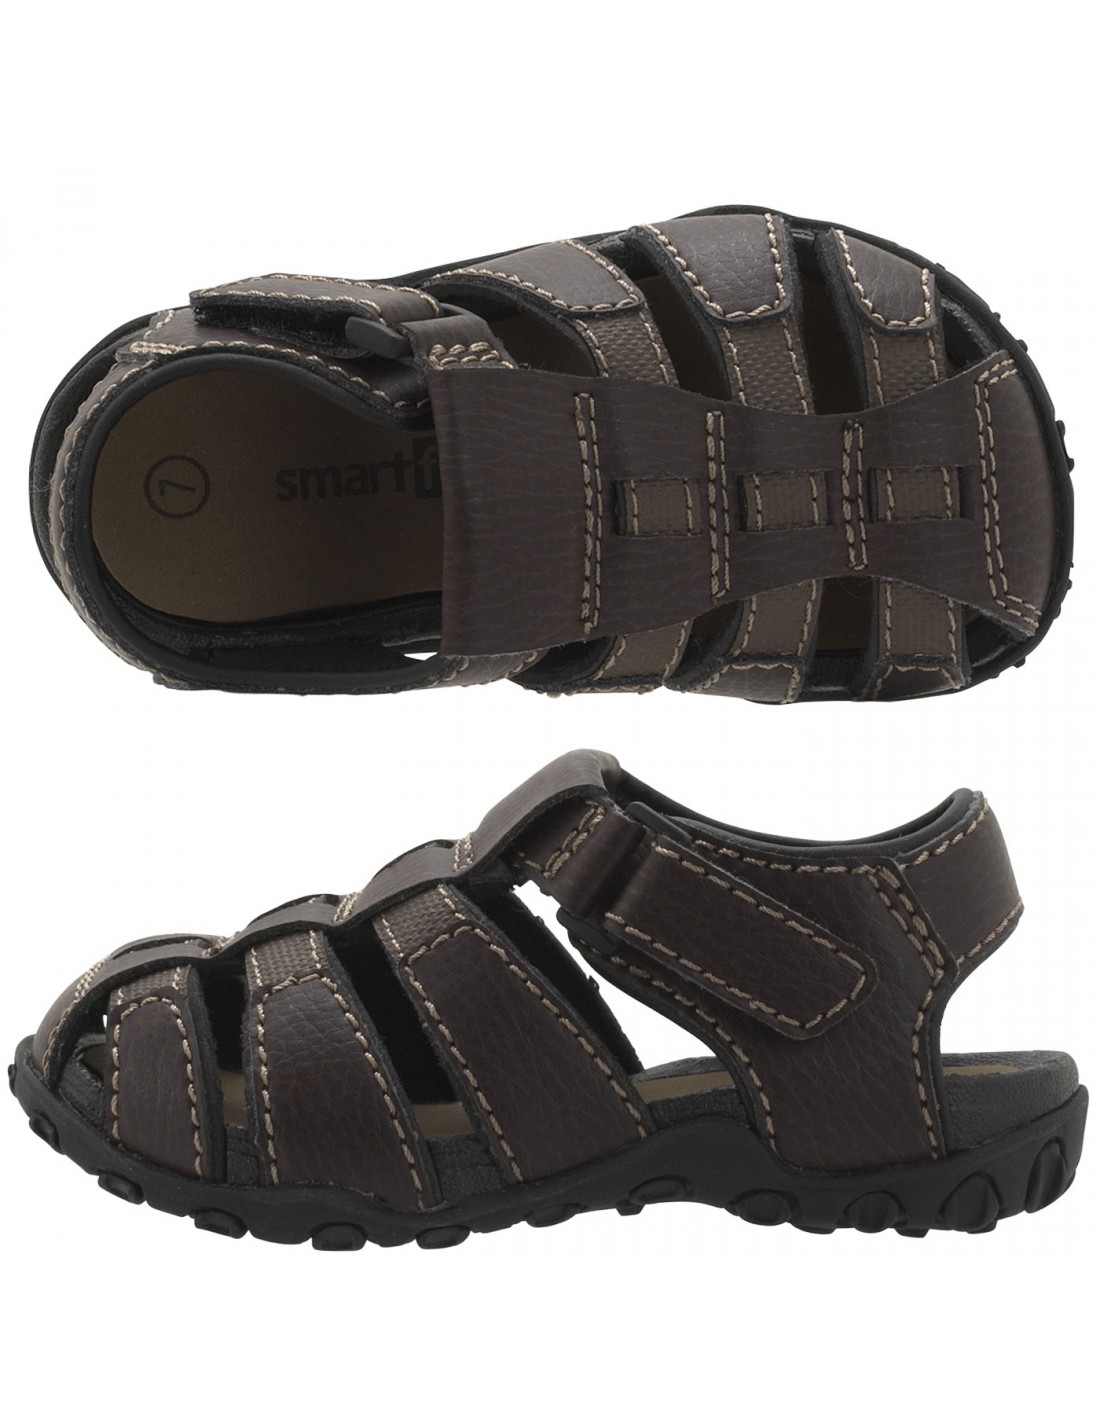 341f92da1a87 Boys  Toddler Livingston Fisherman sandals - Brown